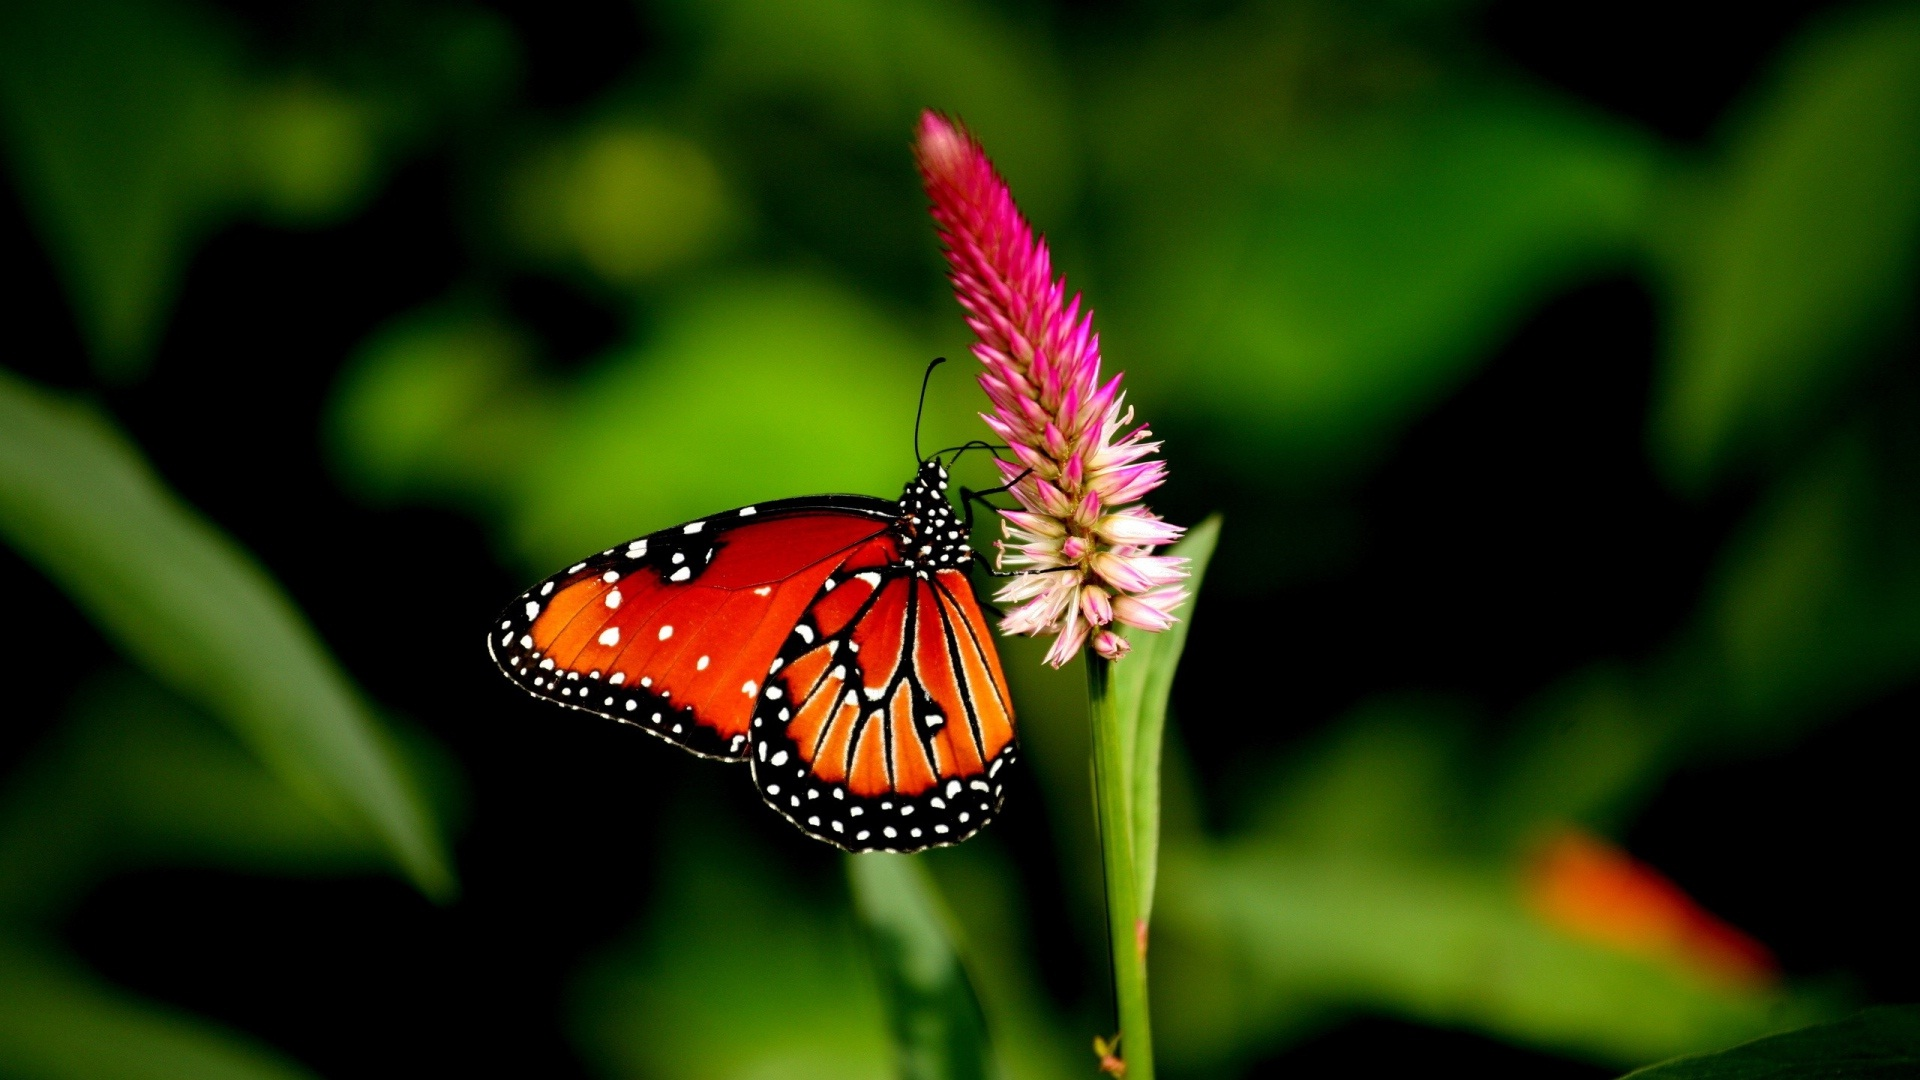 Cute butterfly nice HD wide wallpaper HD Wallpapers Rocks 1920x1080